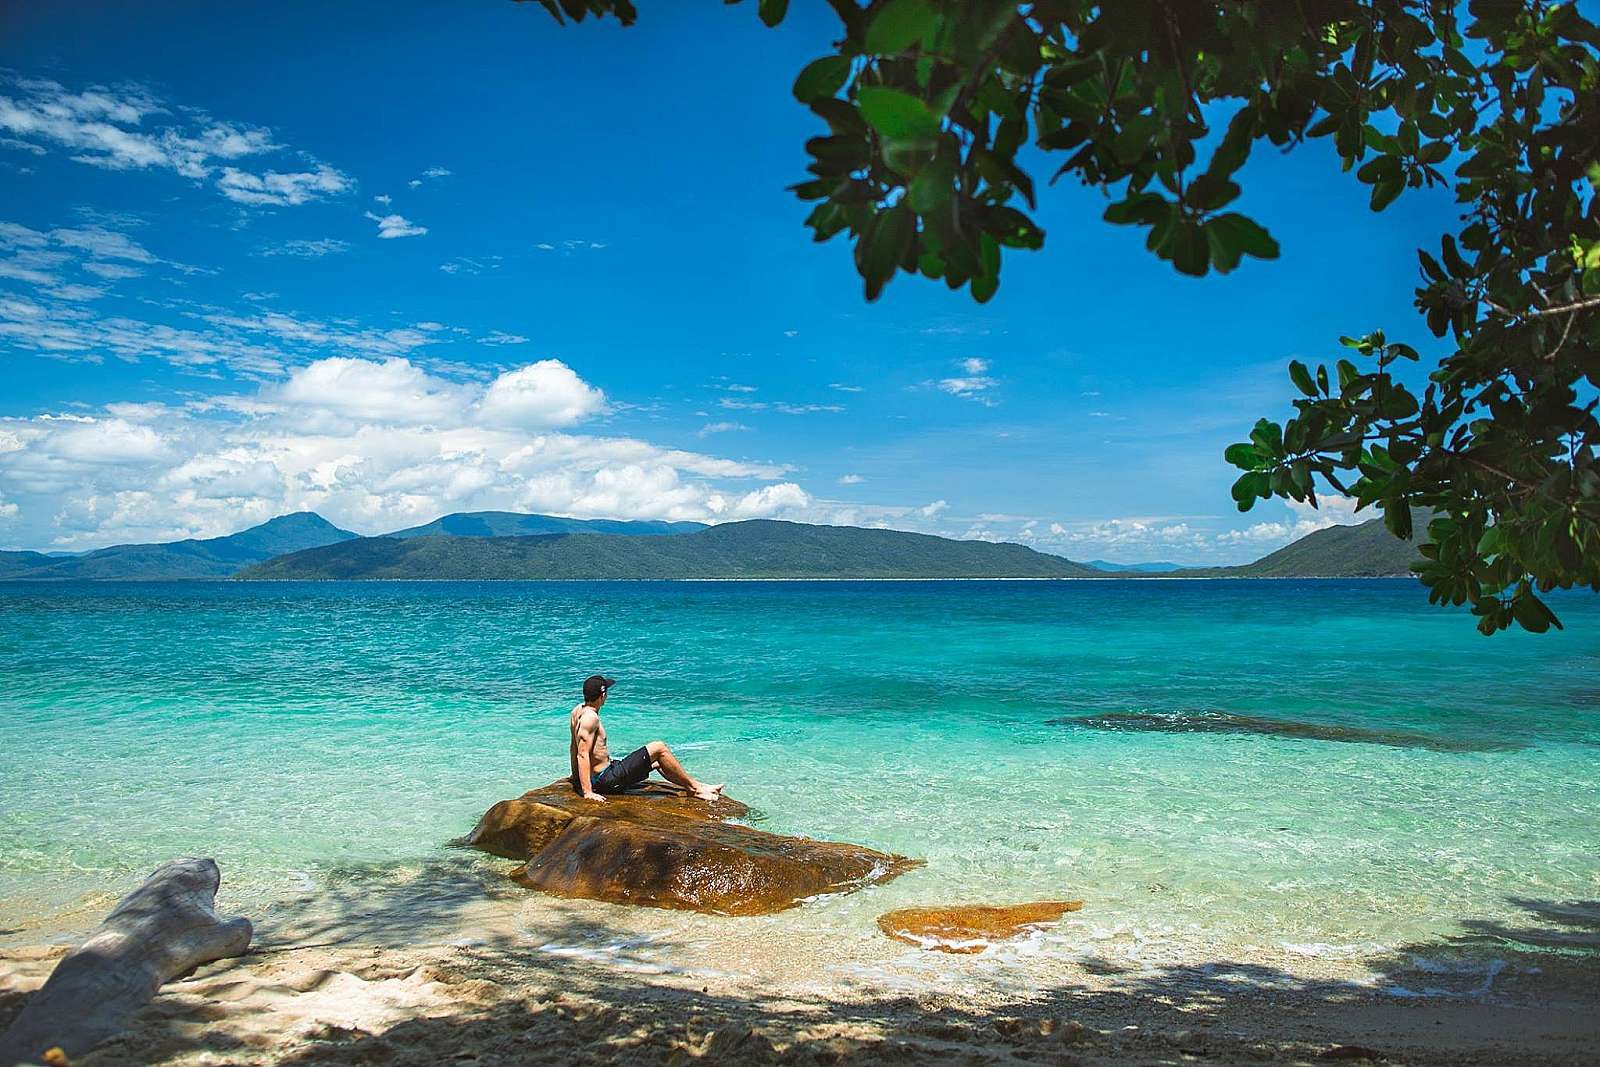 Image for Fitzroy Island - 08:00AM Departure - Same Day Return Fitzroy Island Ferry transfers (Full Day 5:00PM Return)